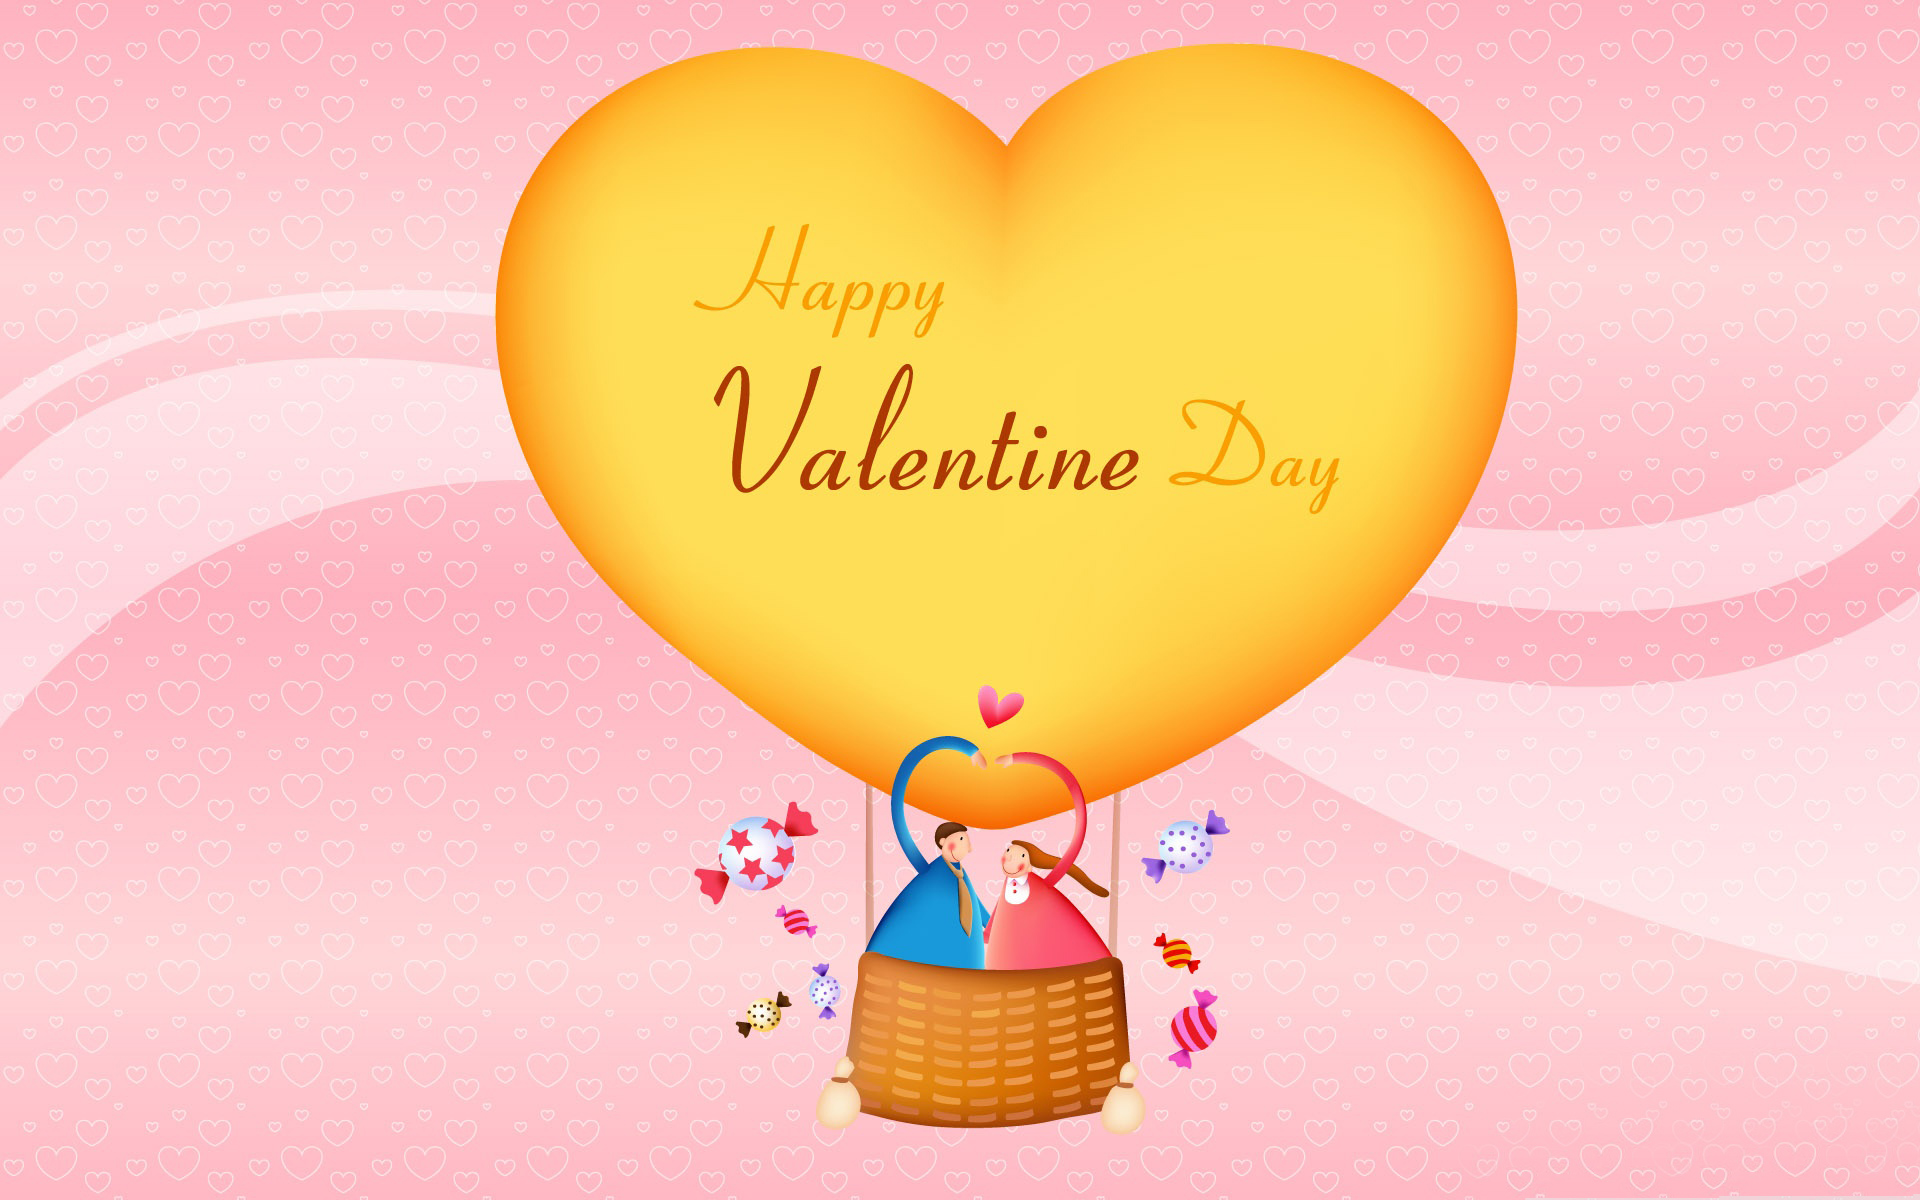 Happy Valentine Day 2015 Wallpapers Images Pics